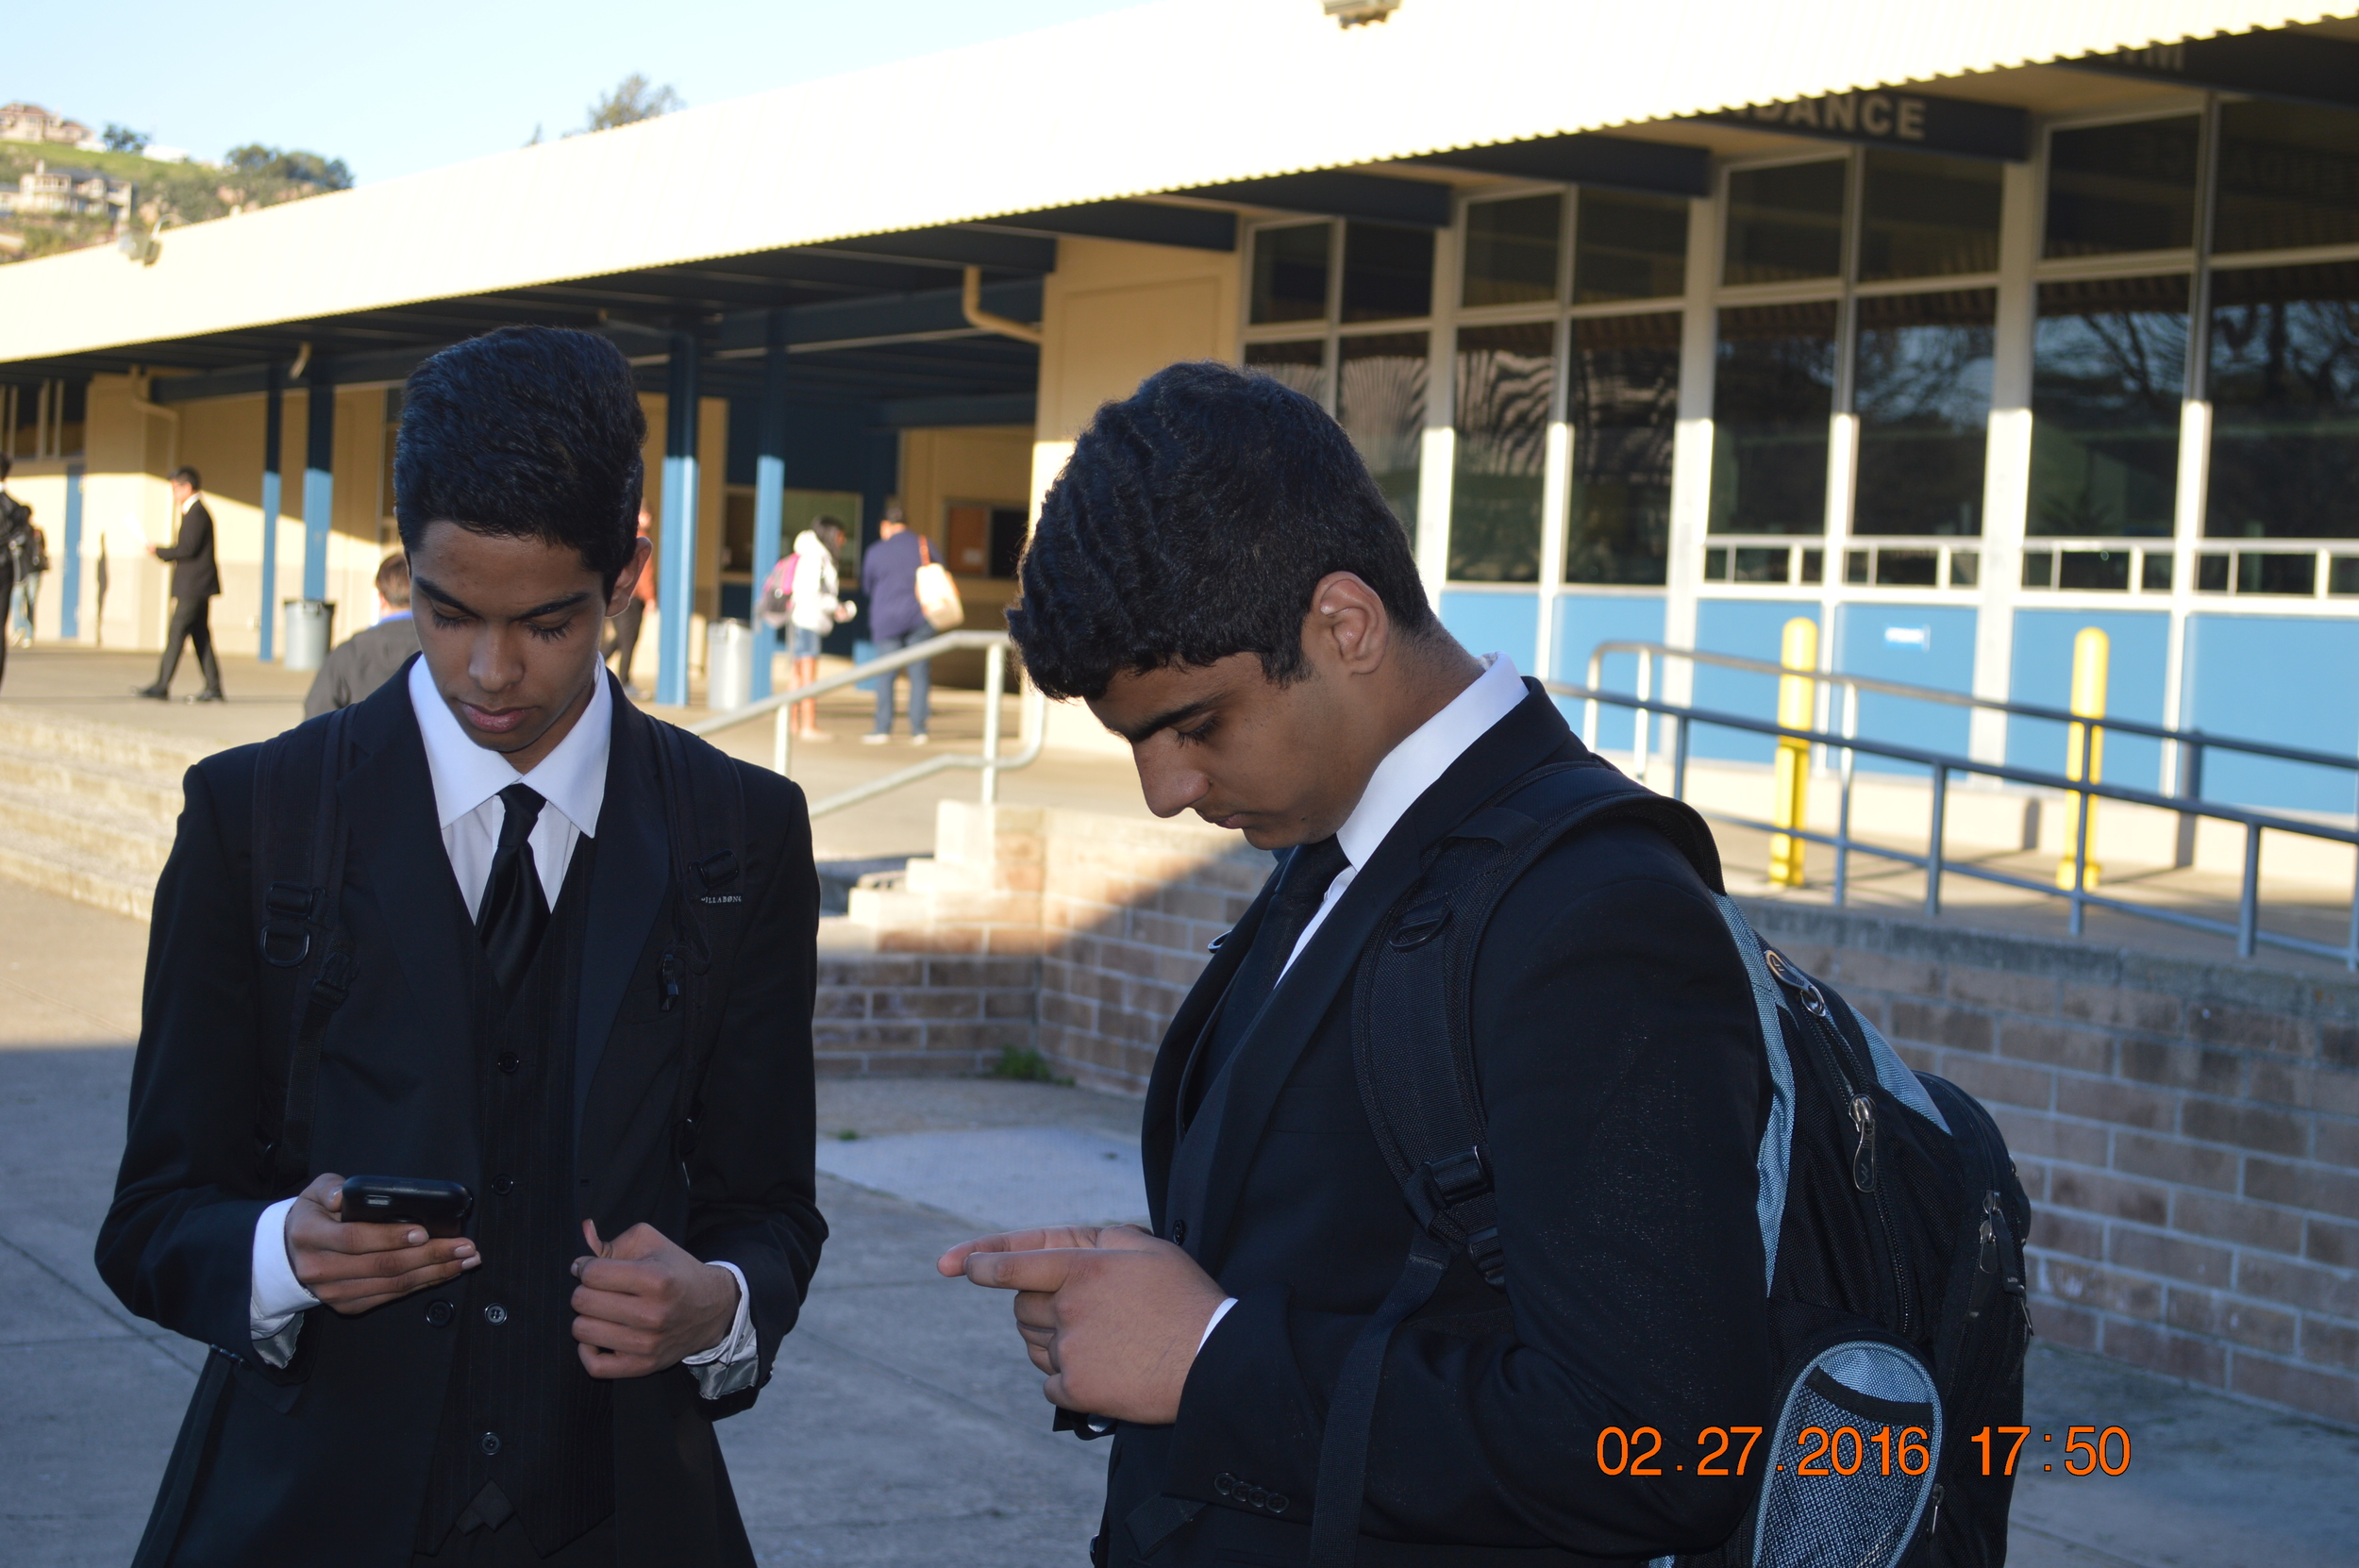 Partners Ismail Shaik and Pranav Govindaraju share a moment of anti-social phone using. Kids these days.....